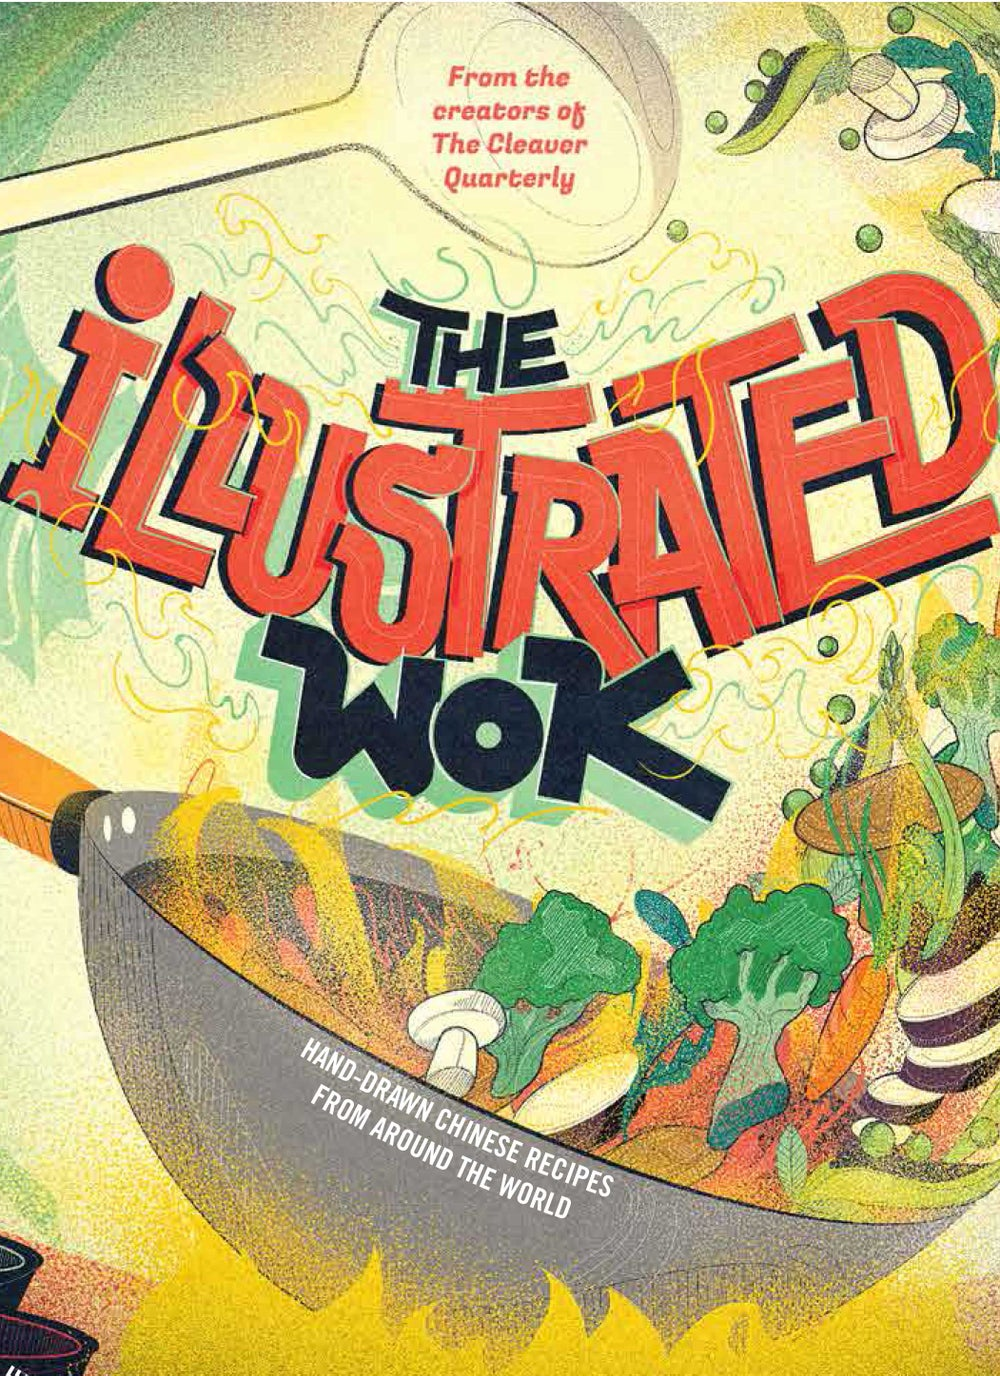 Image of THE ILLUSTRATED WOK